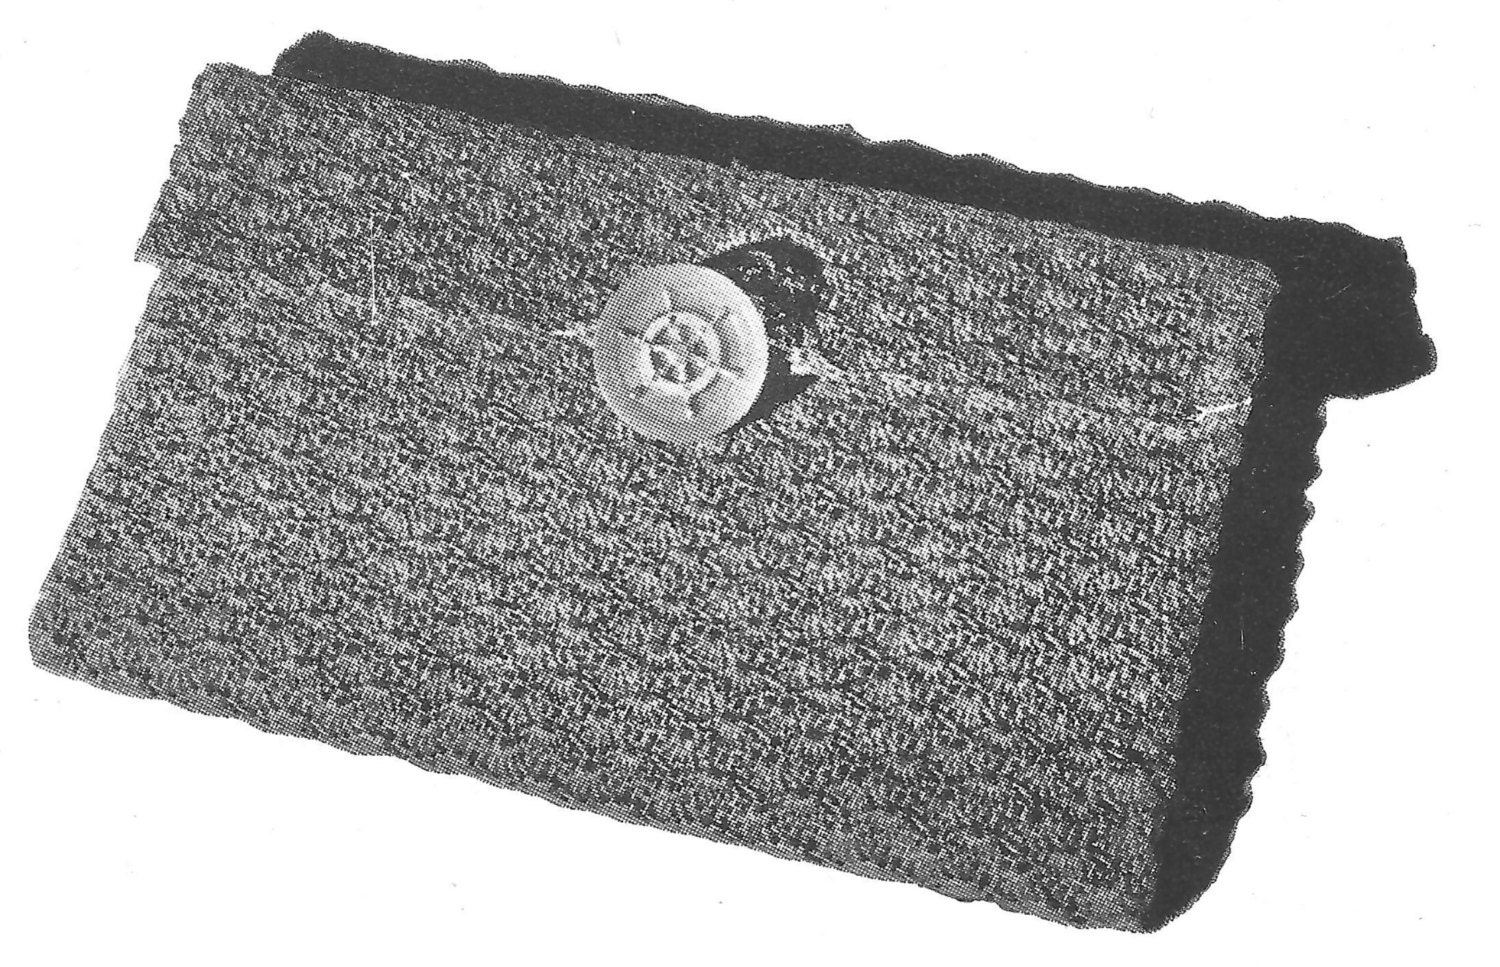 Vintage Crochet Clutch Pattern : PDF Purse Pattern Crochet Clutch Shell by CrochetPatternRewind